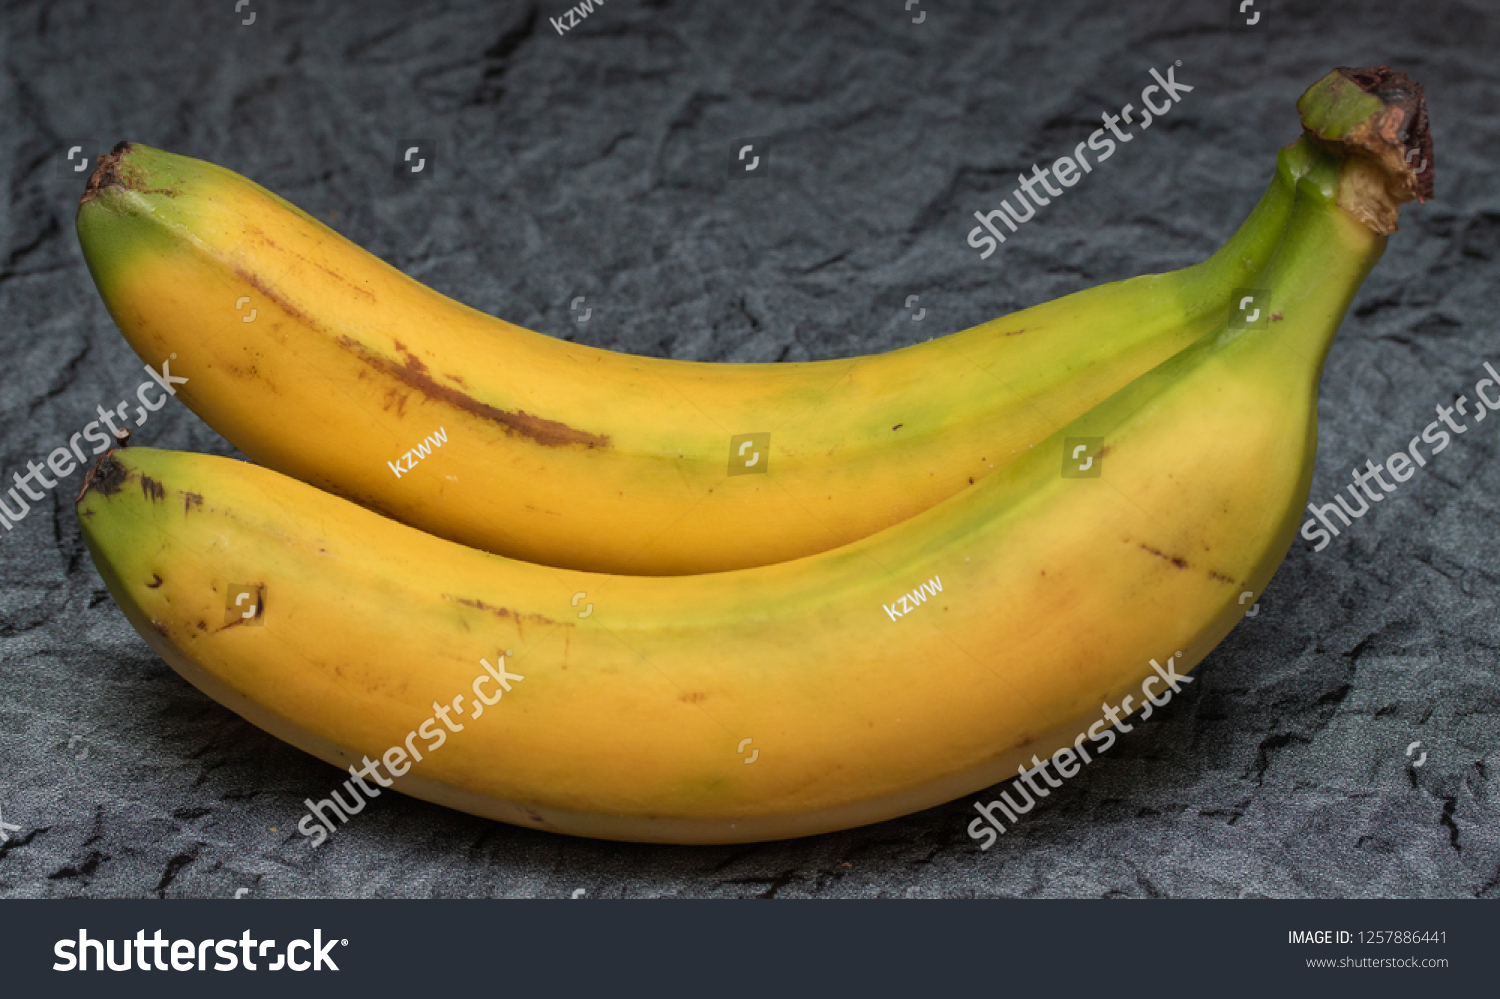 Banana On Table two ripe bananas on the table